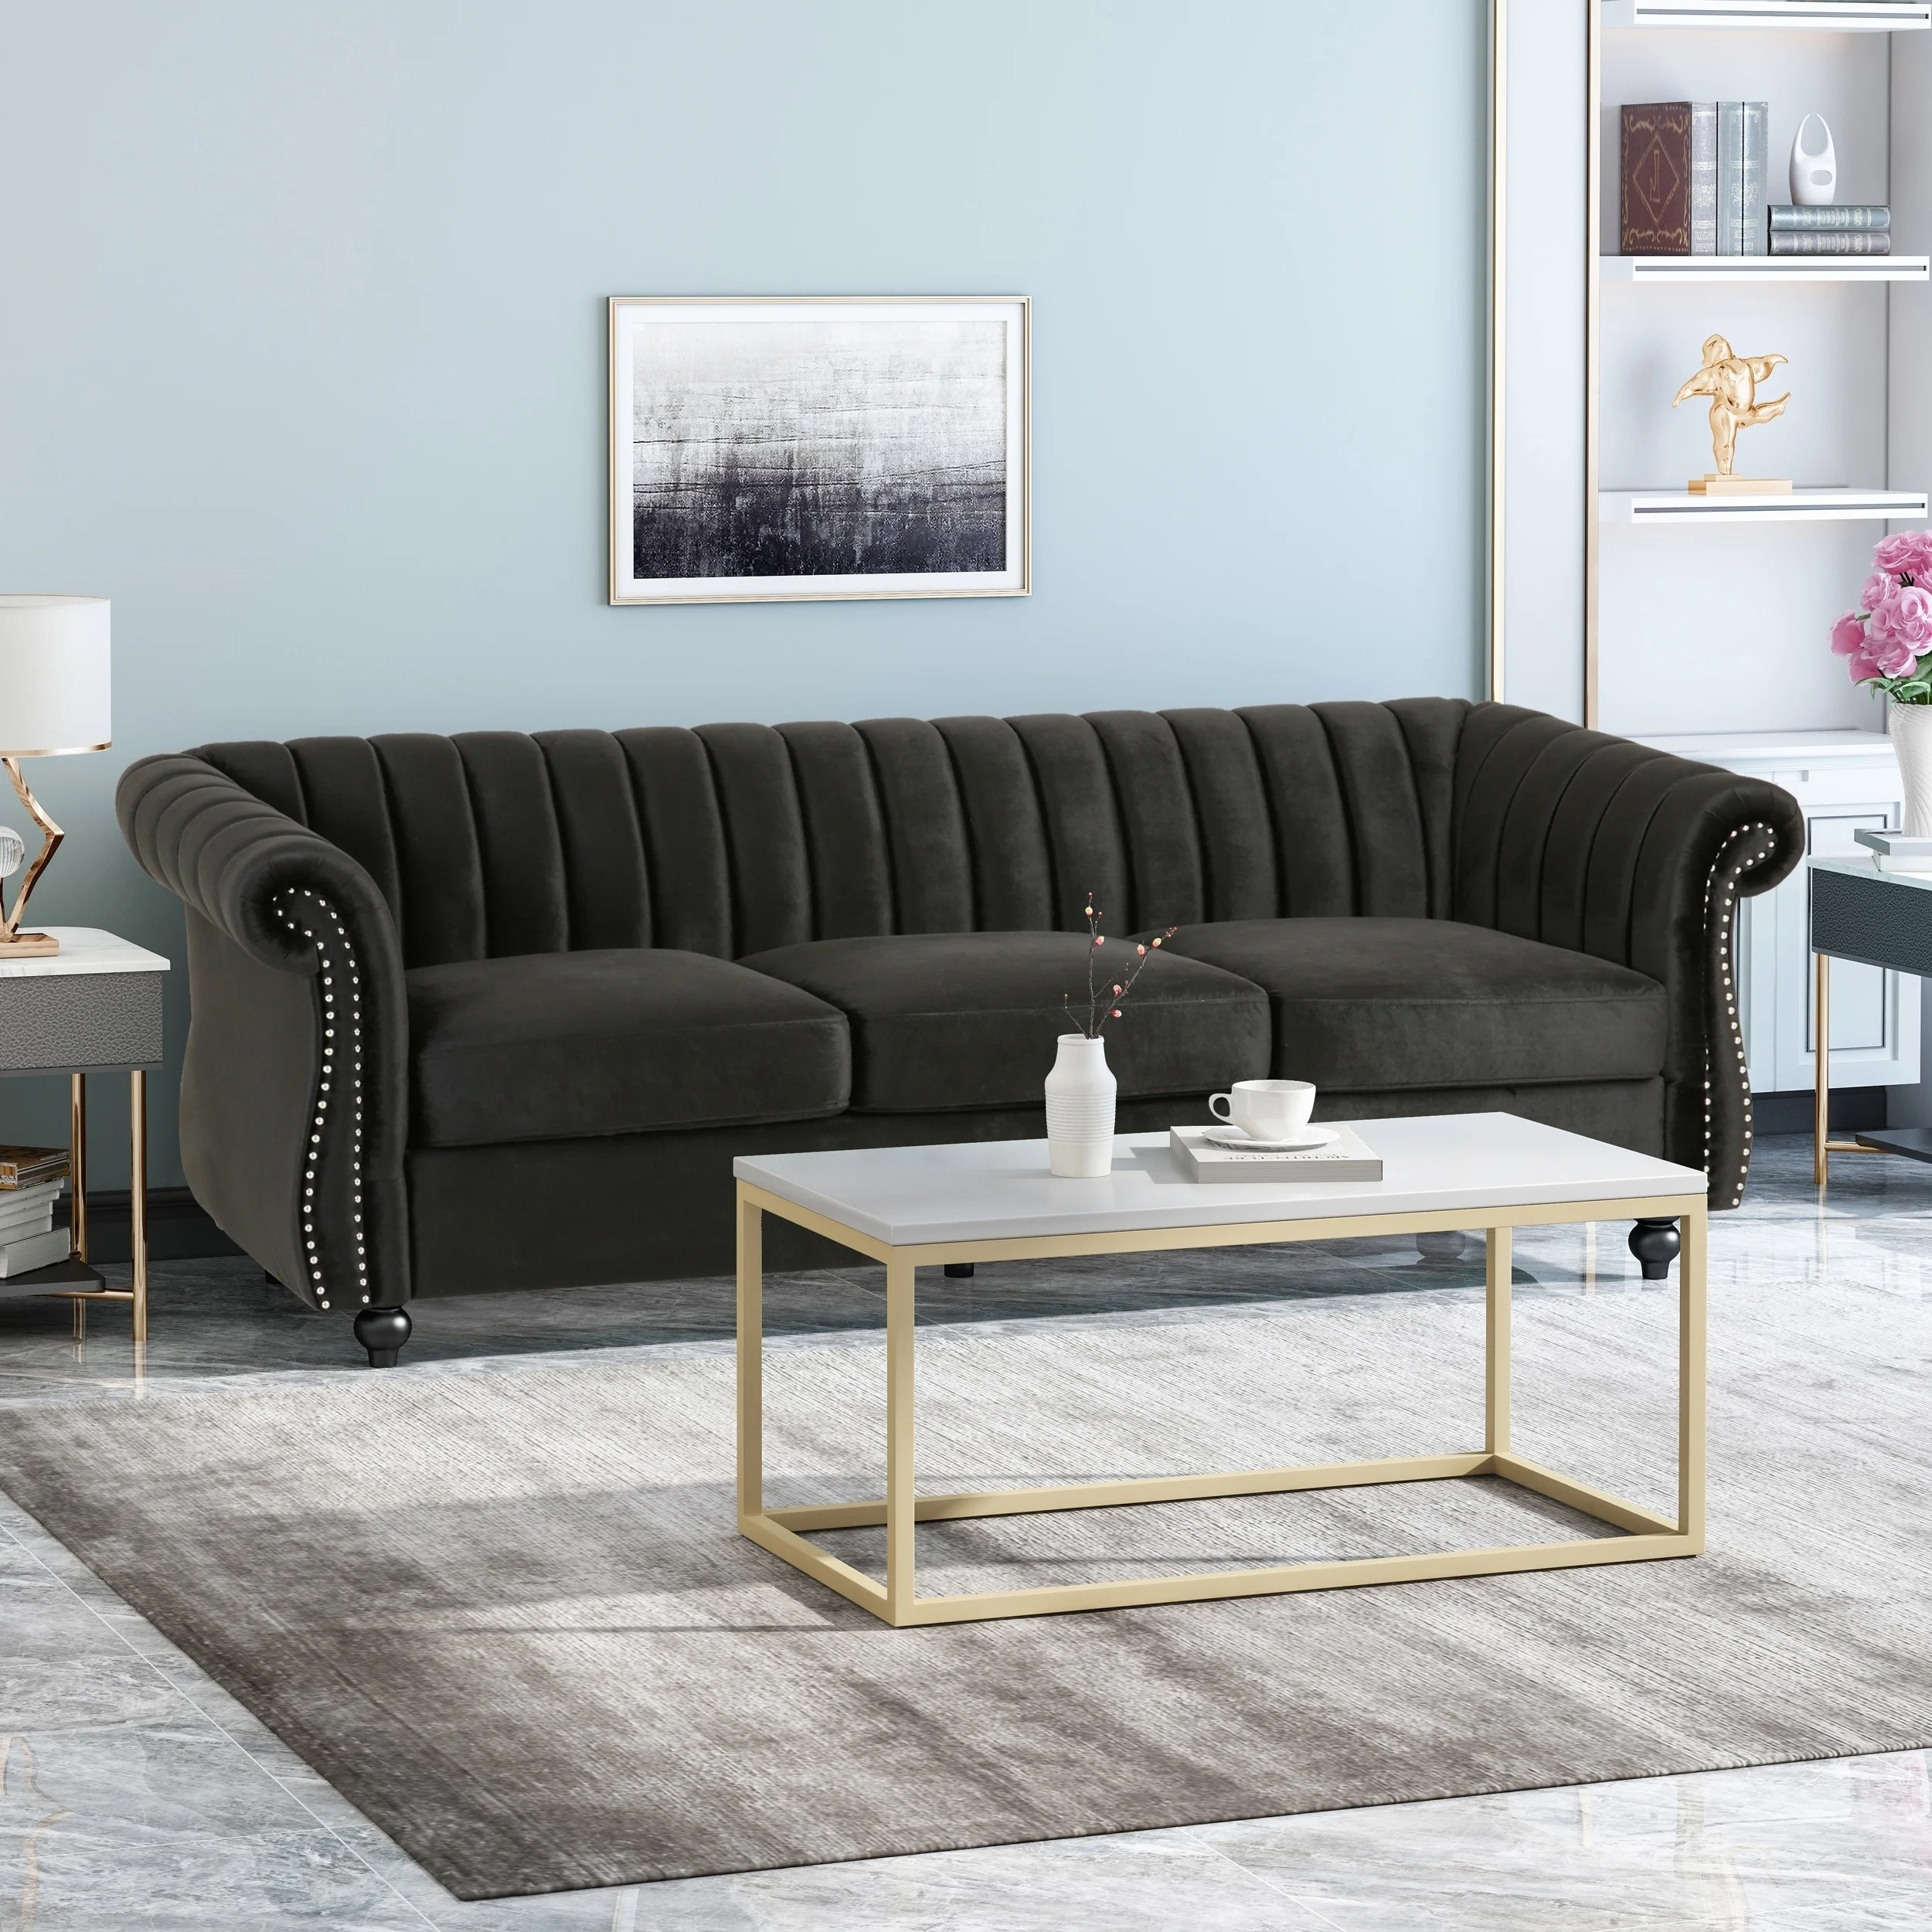 Chesterfield Sofa Samt Rosa Buy Nailheads Sofas Couches Online At Overstock Our Best Living